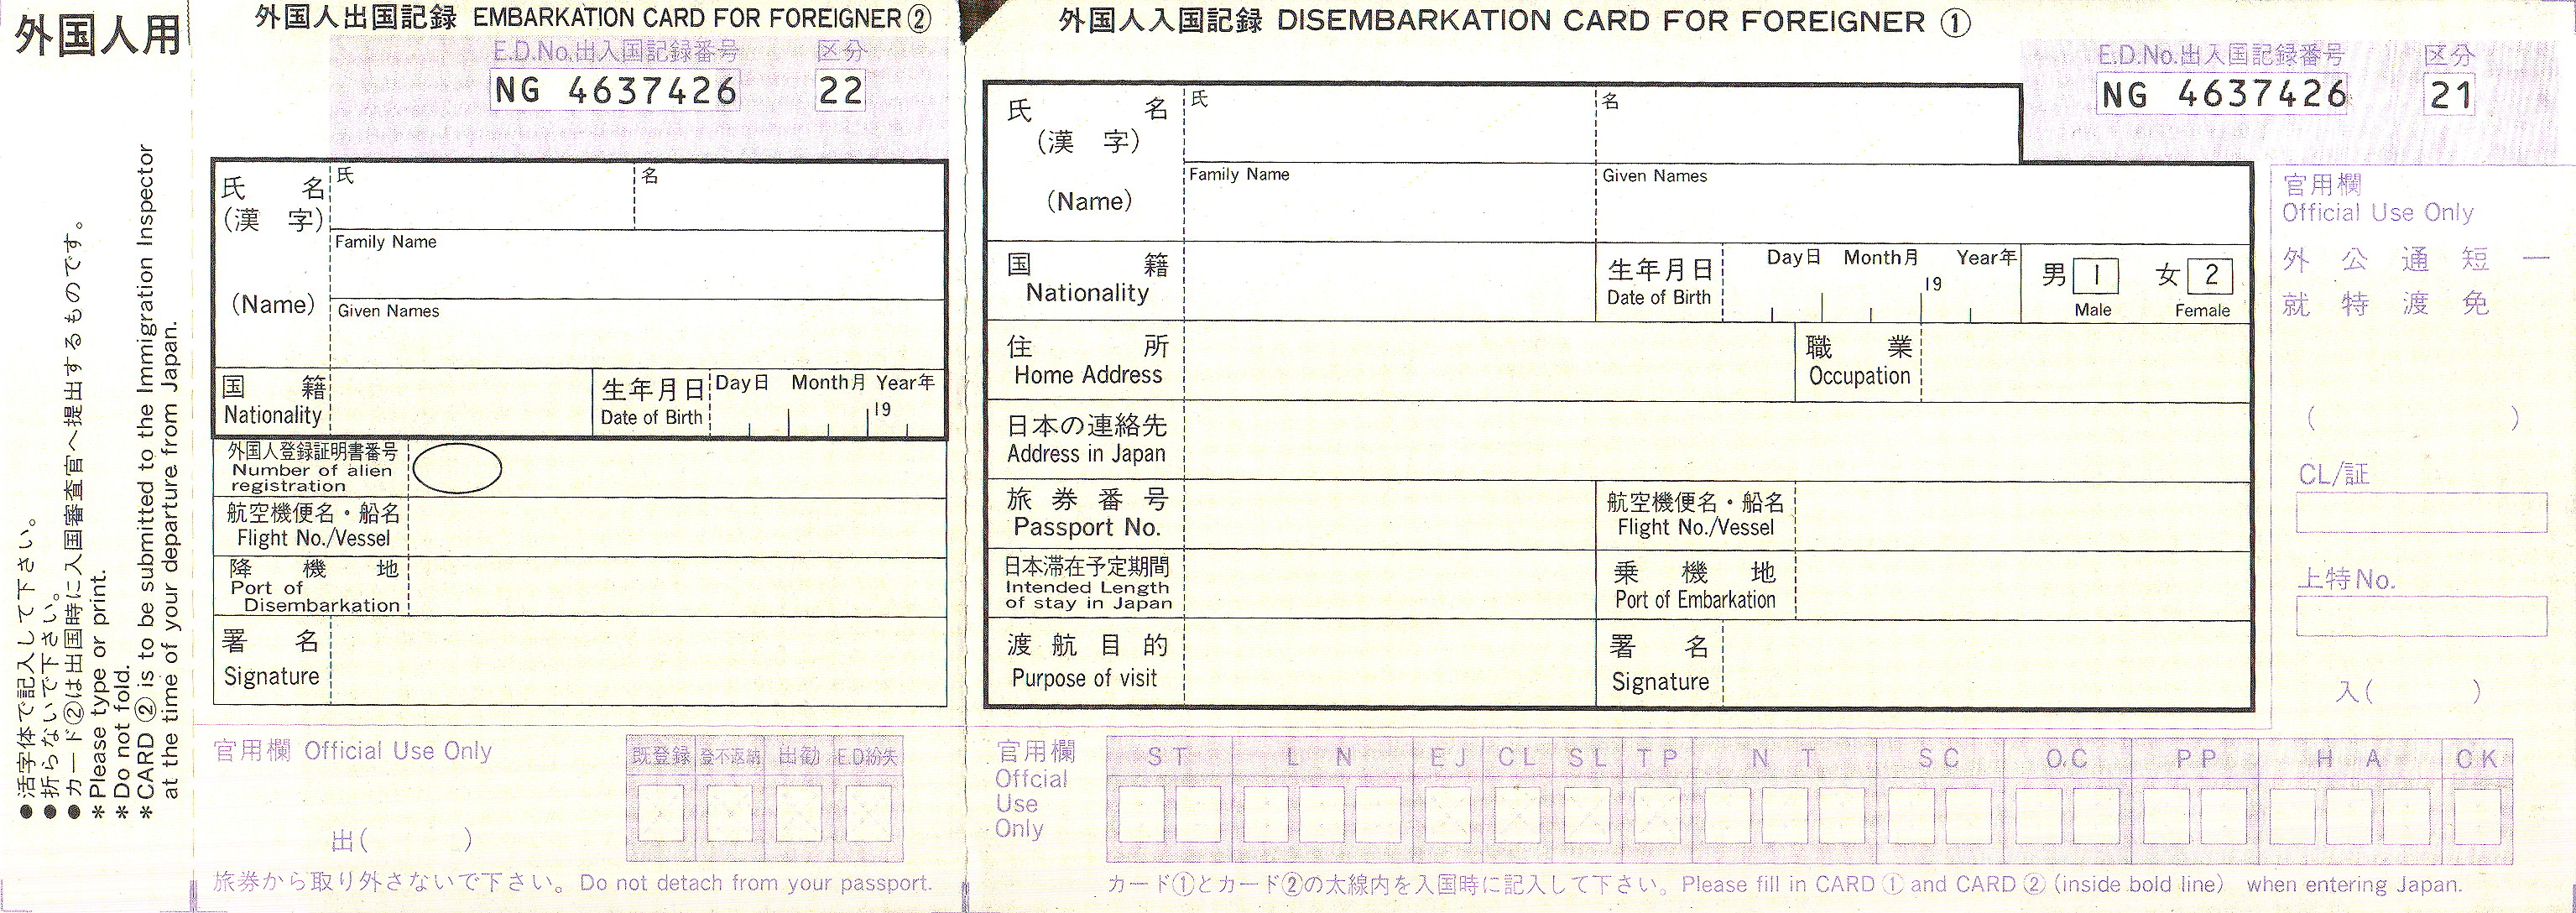 Japanese Gender Chart: Japanese immigration card for foreigners.jpg - Wikimedia Commons,Chart